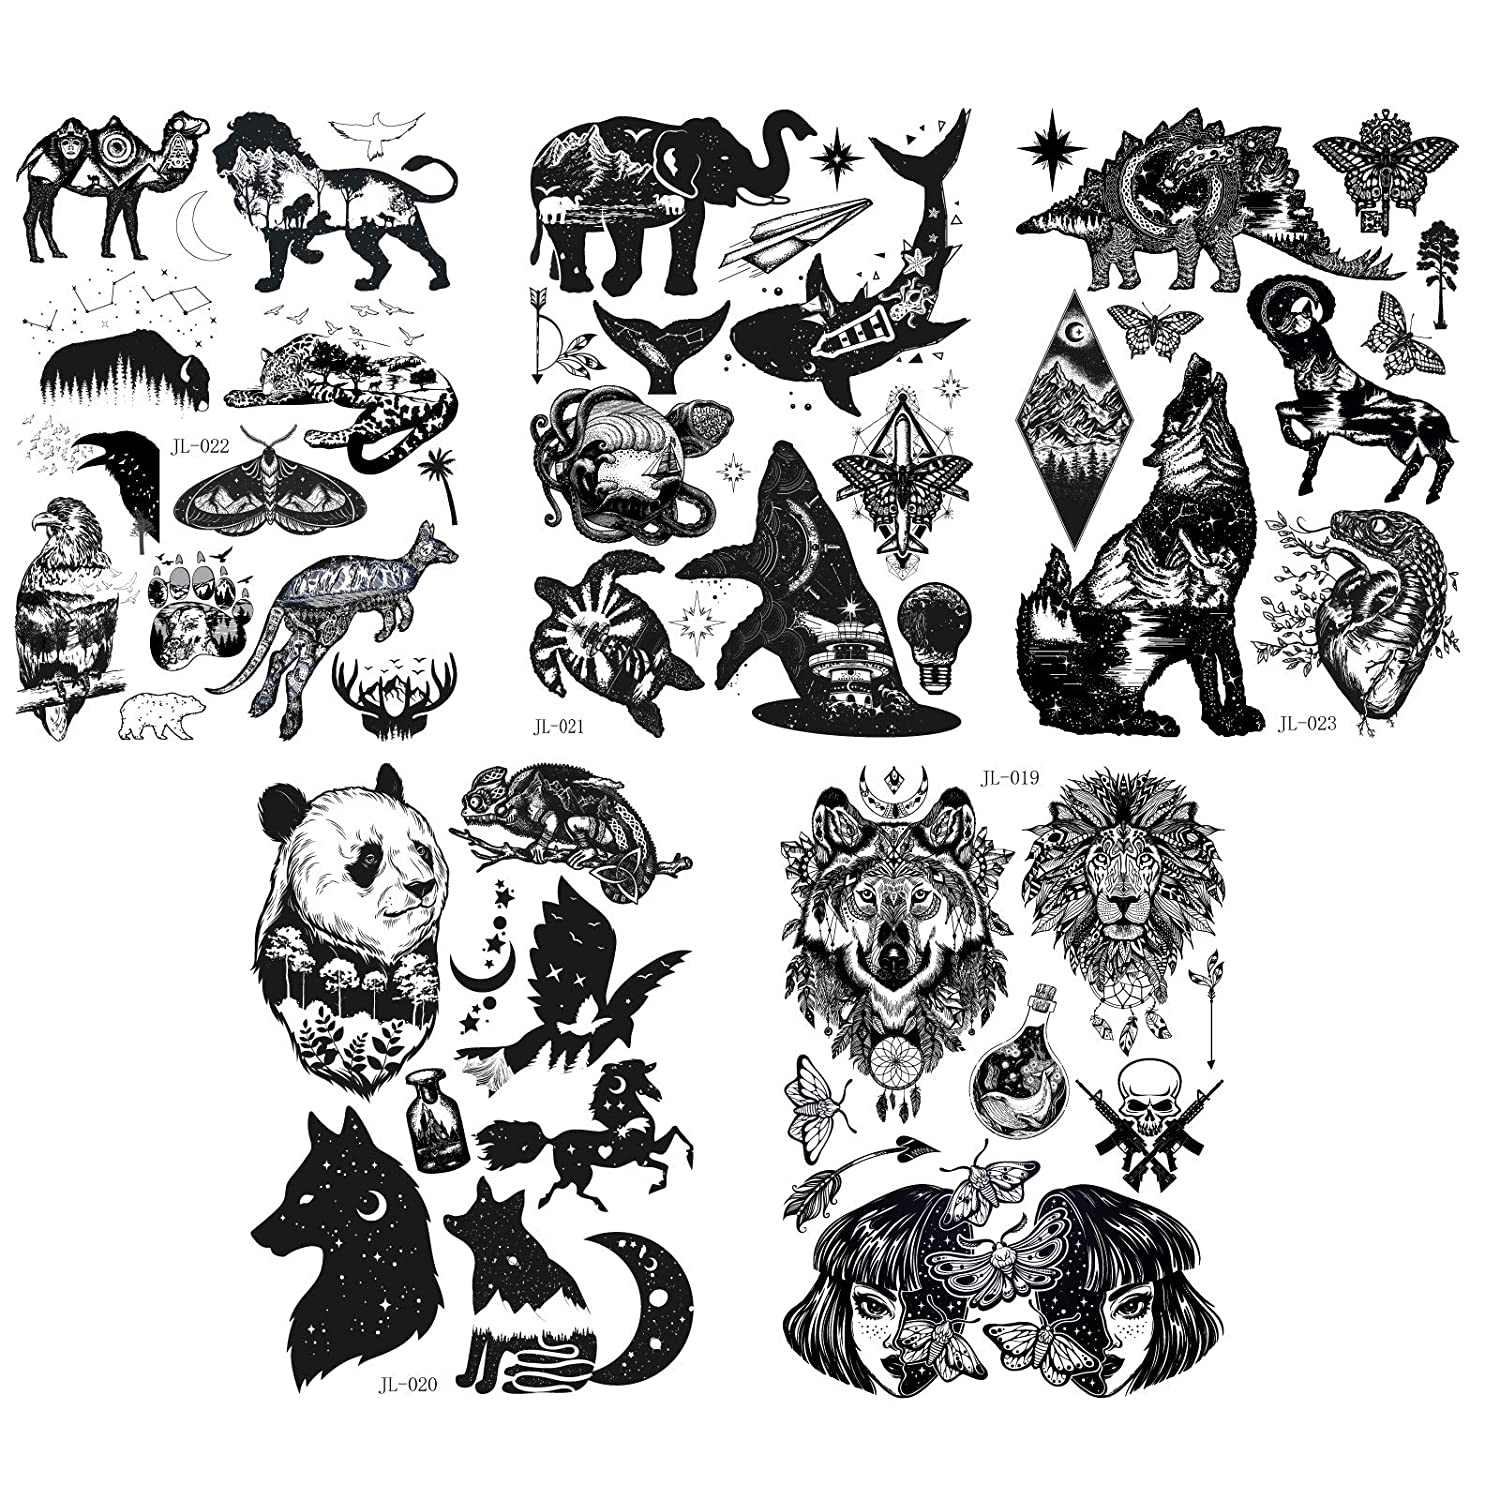 5 Sheets different temporary fake tattoos punk fashion waterproof temporary tattoo stickers suitable for adult children body art party decoration (B)